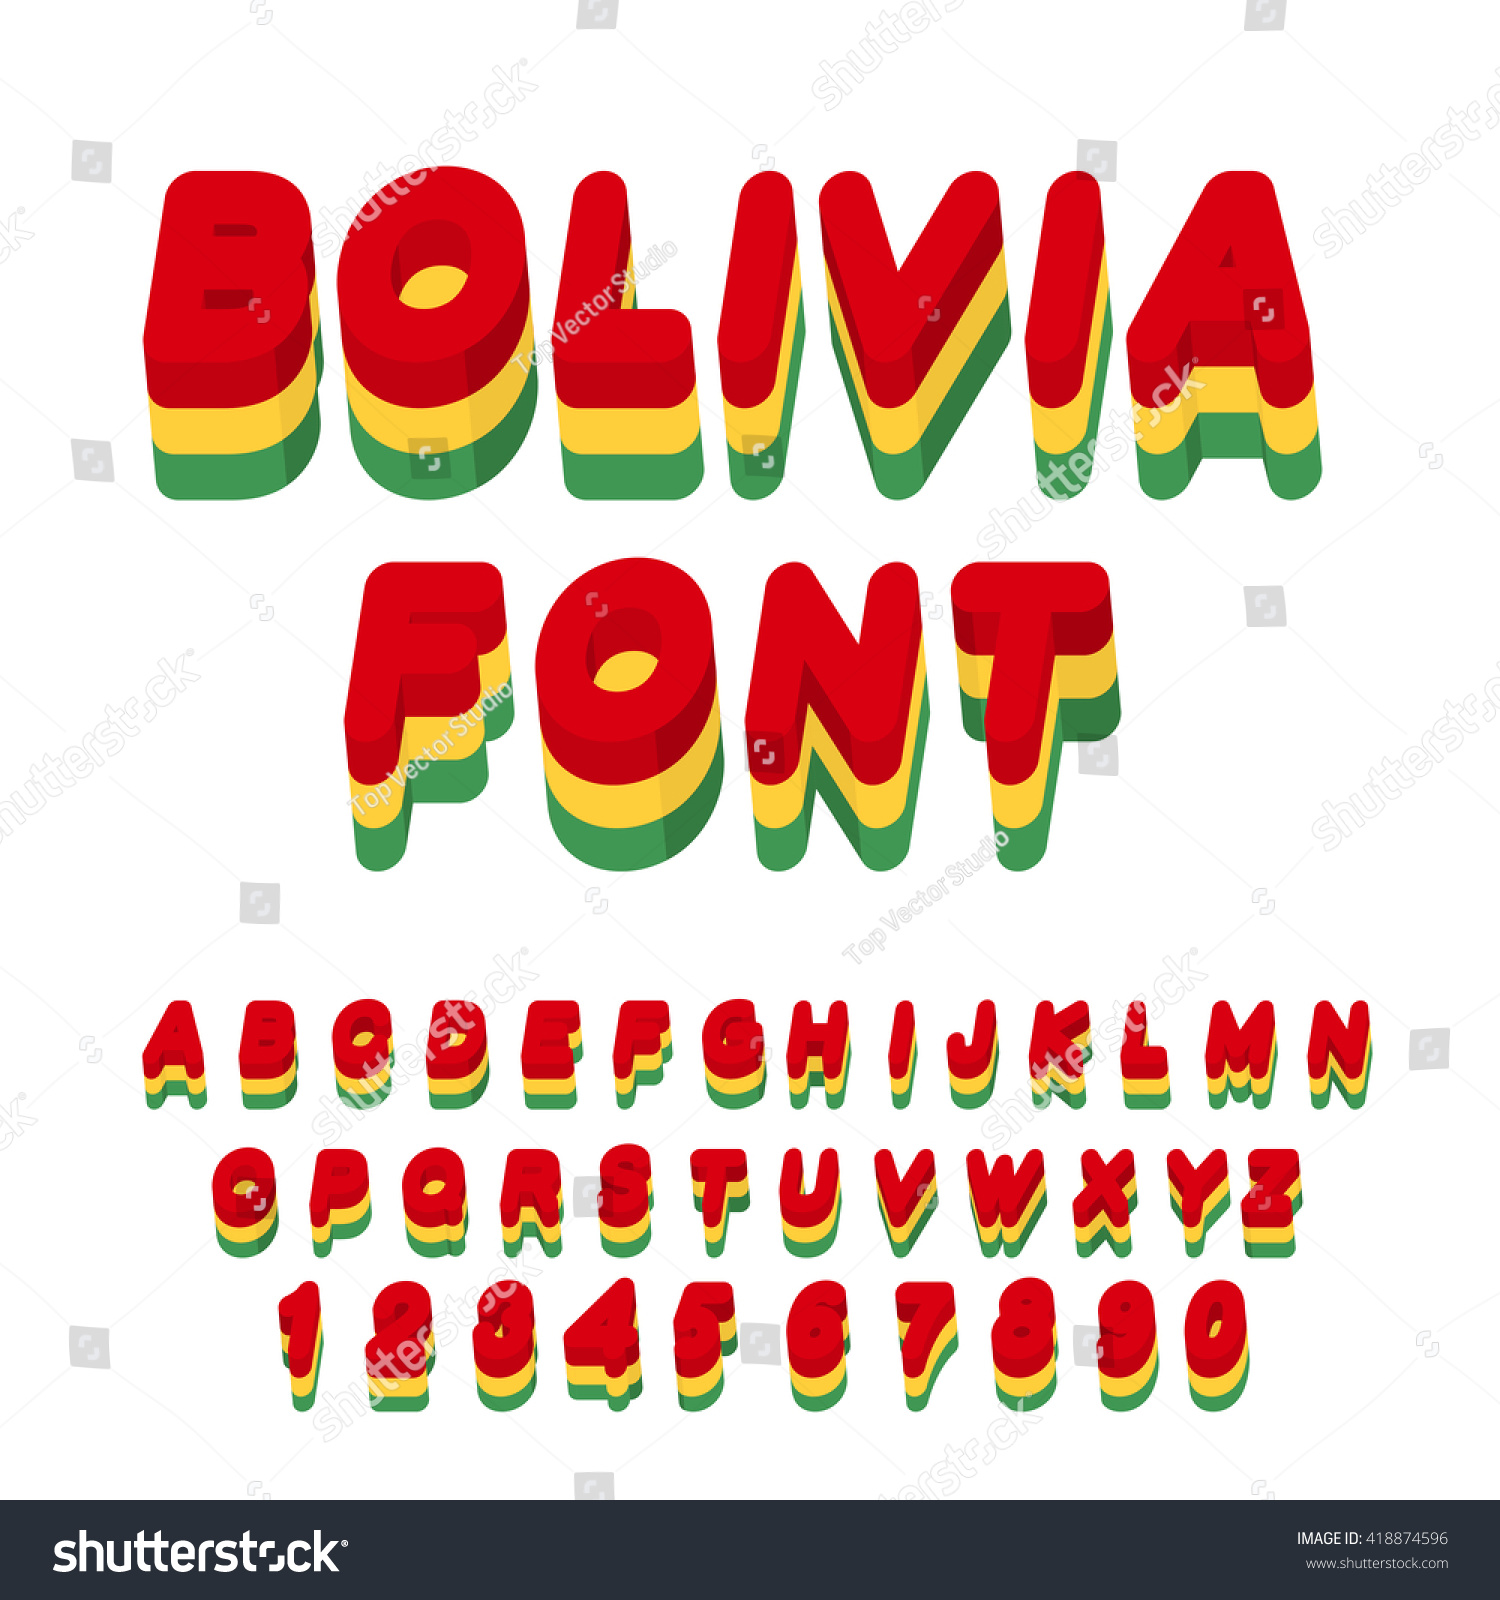 hight resolution of bolivian flag on letters national patriotic alphabet 3d letter state